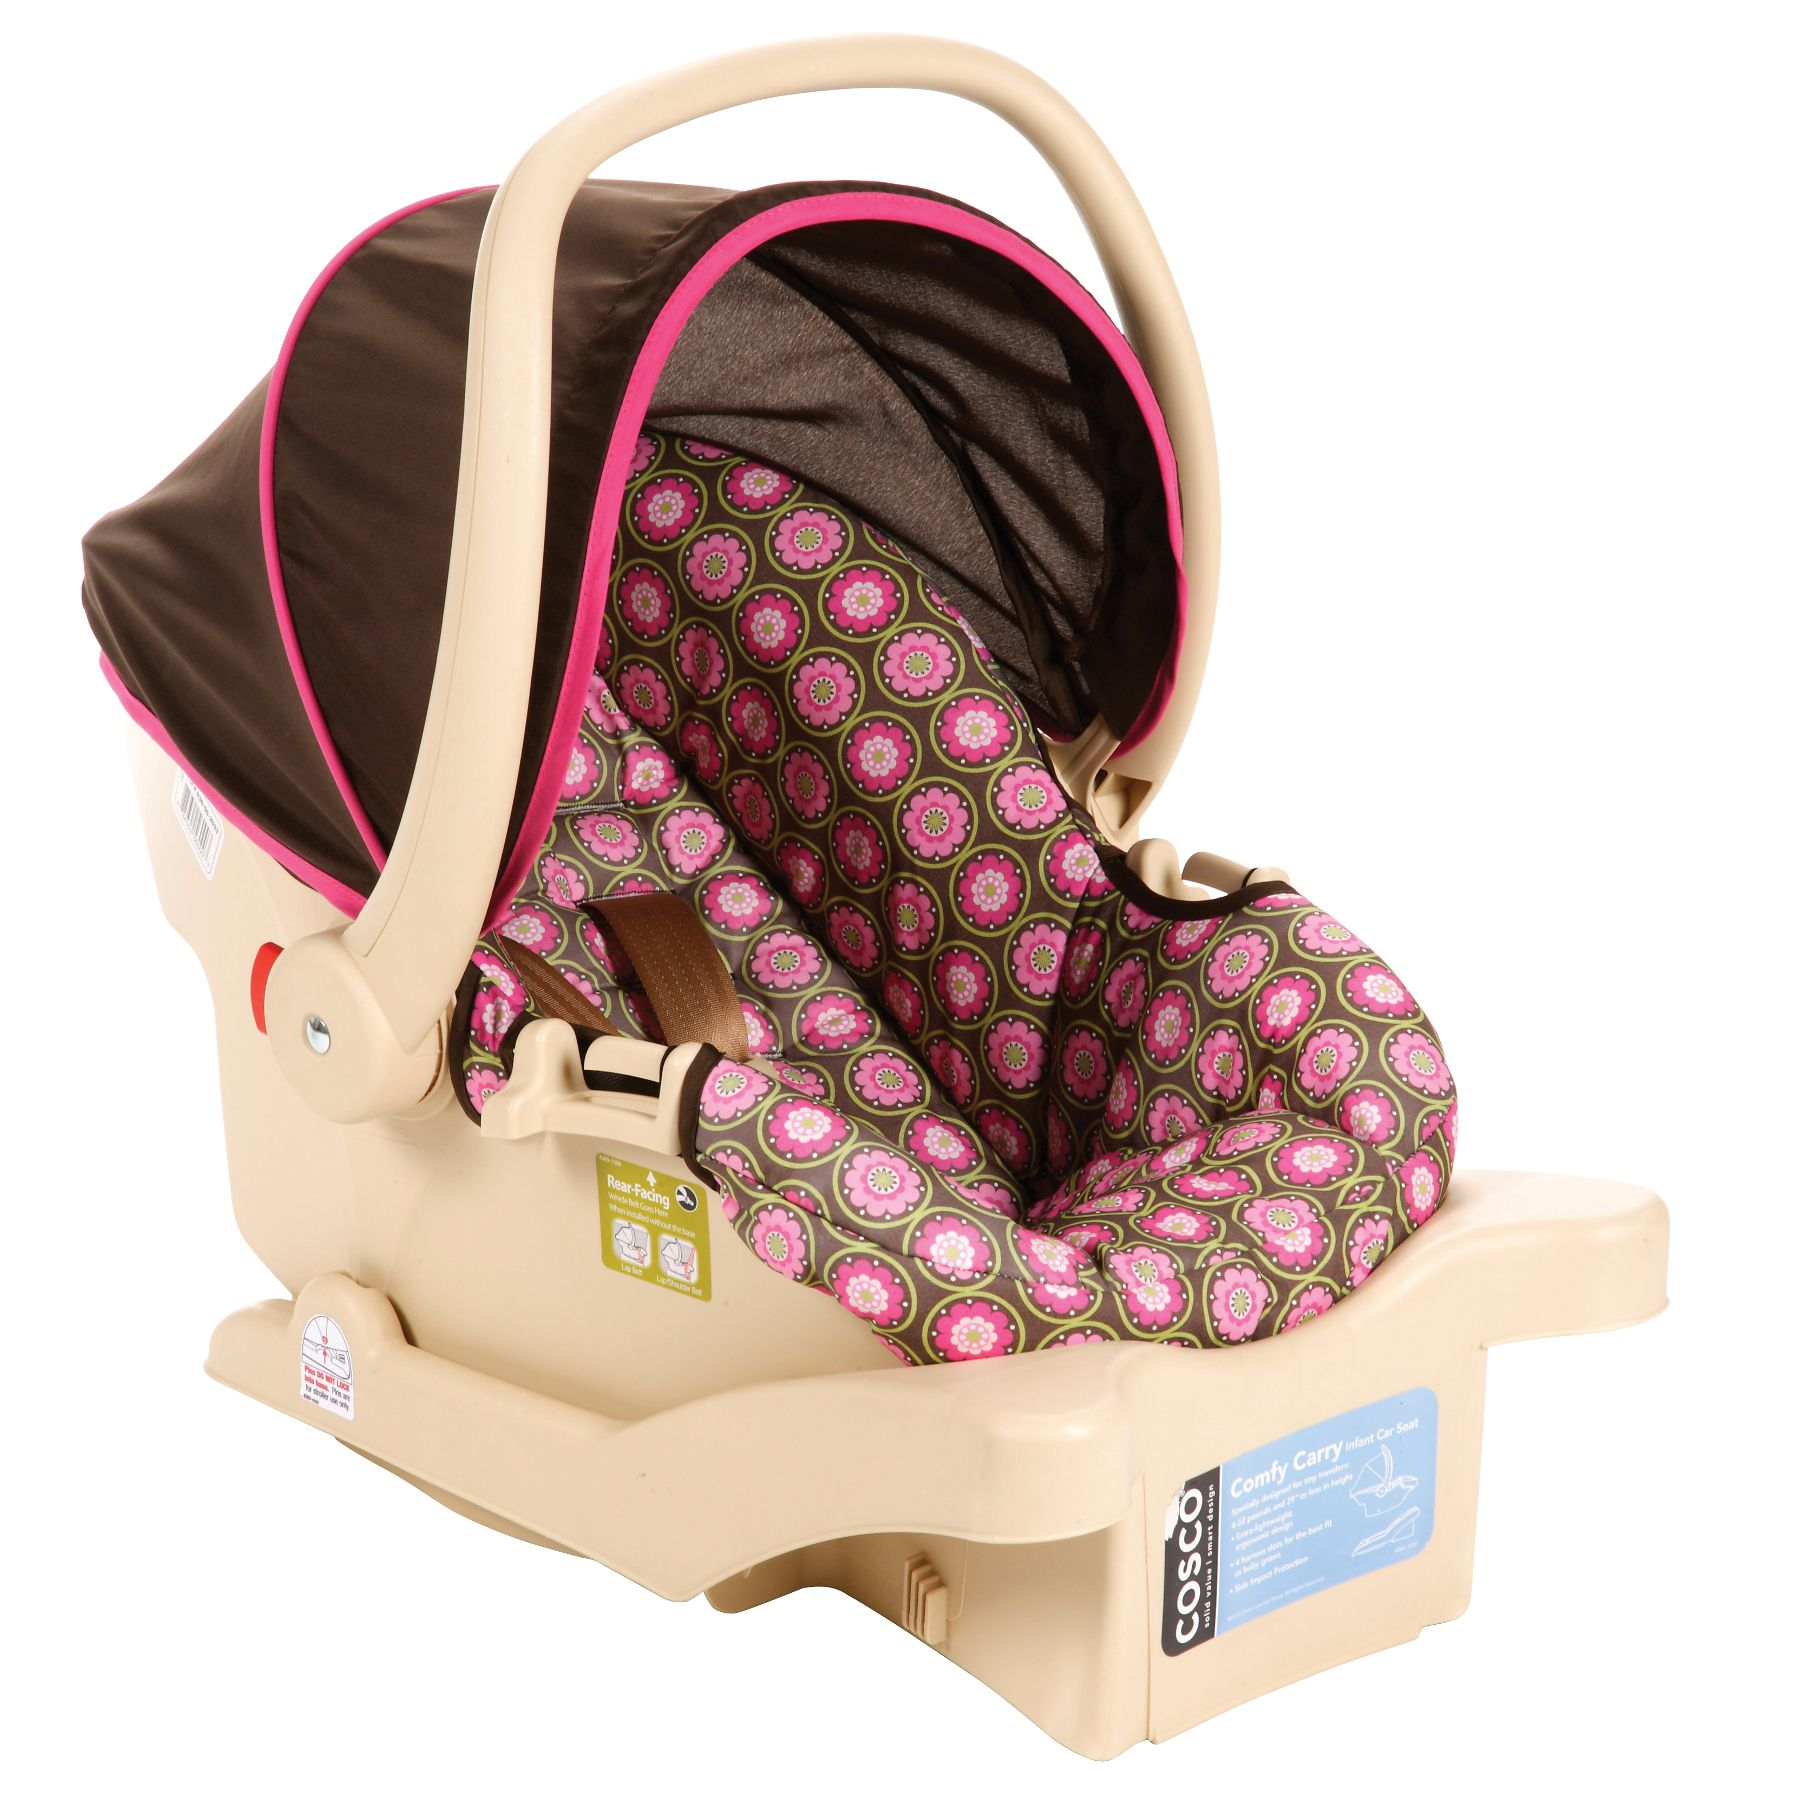 Comfy Carry Infant Seat - Bloomsbury